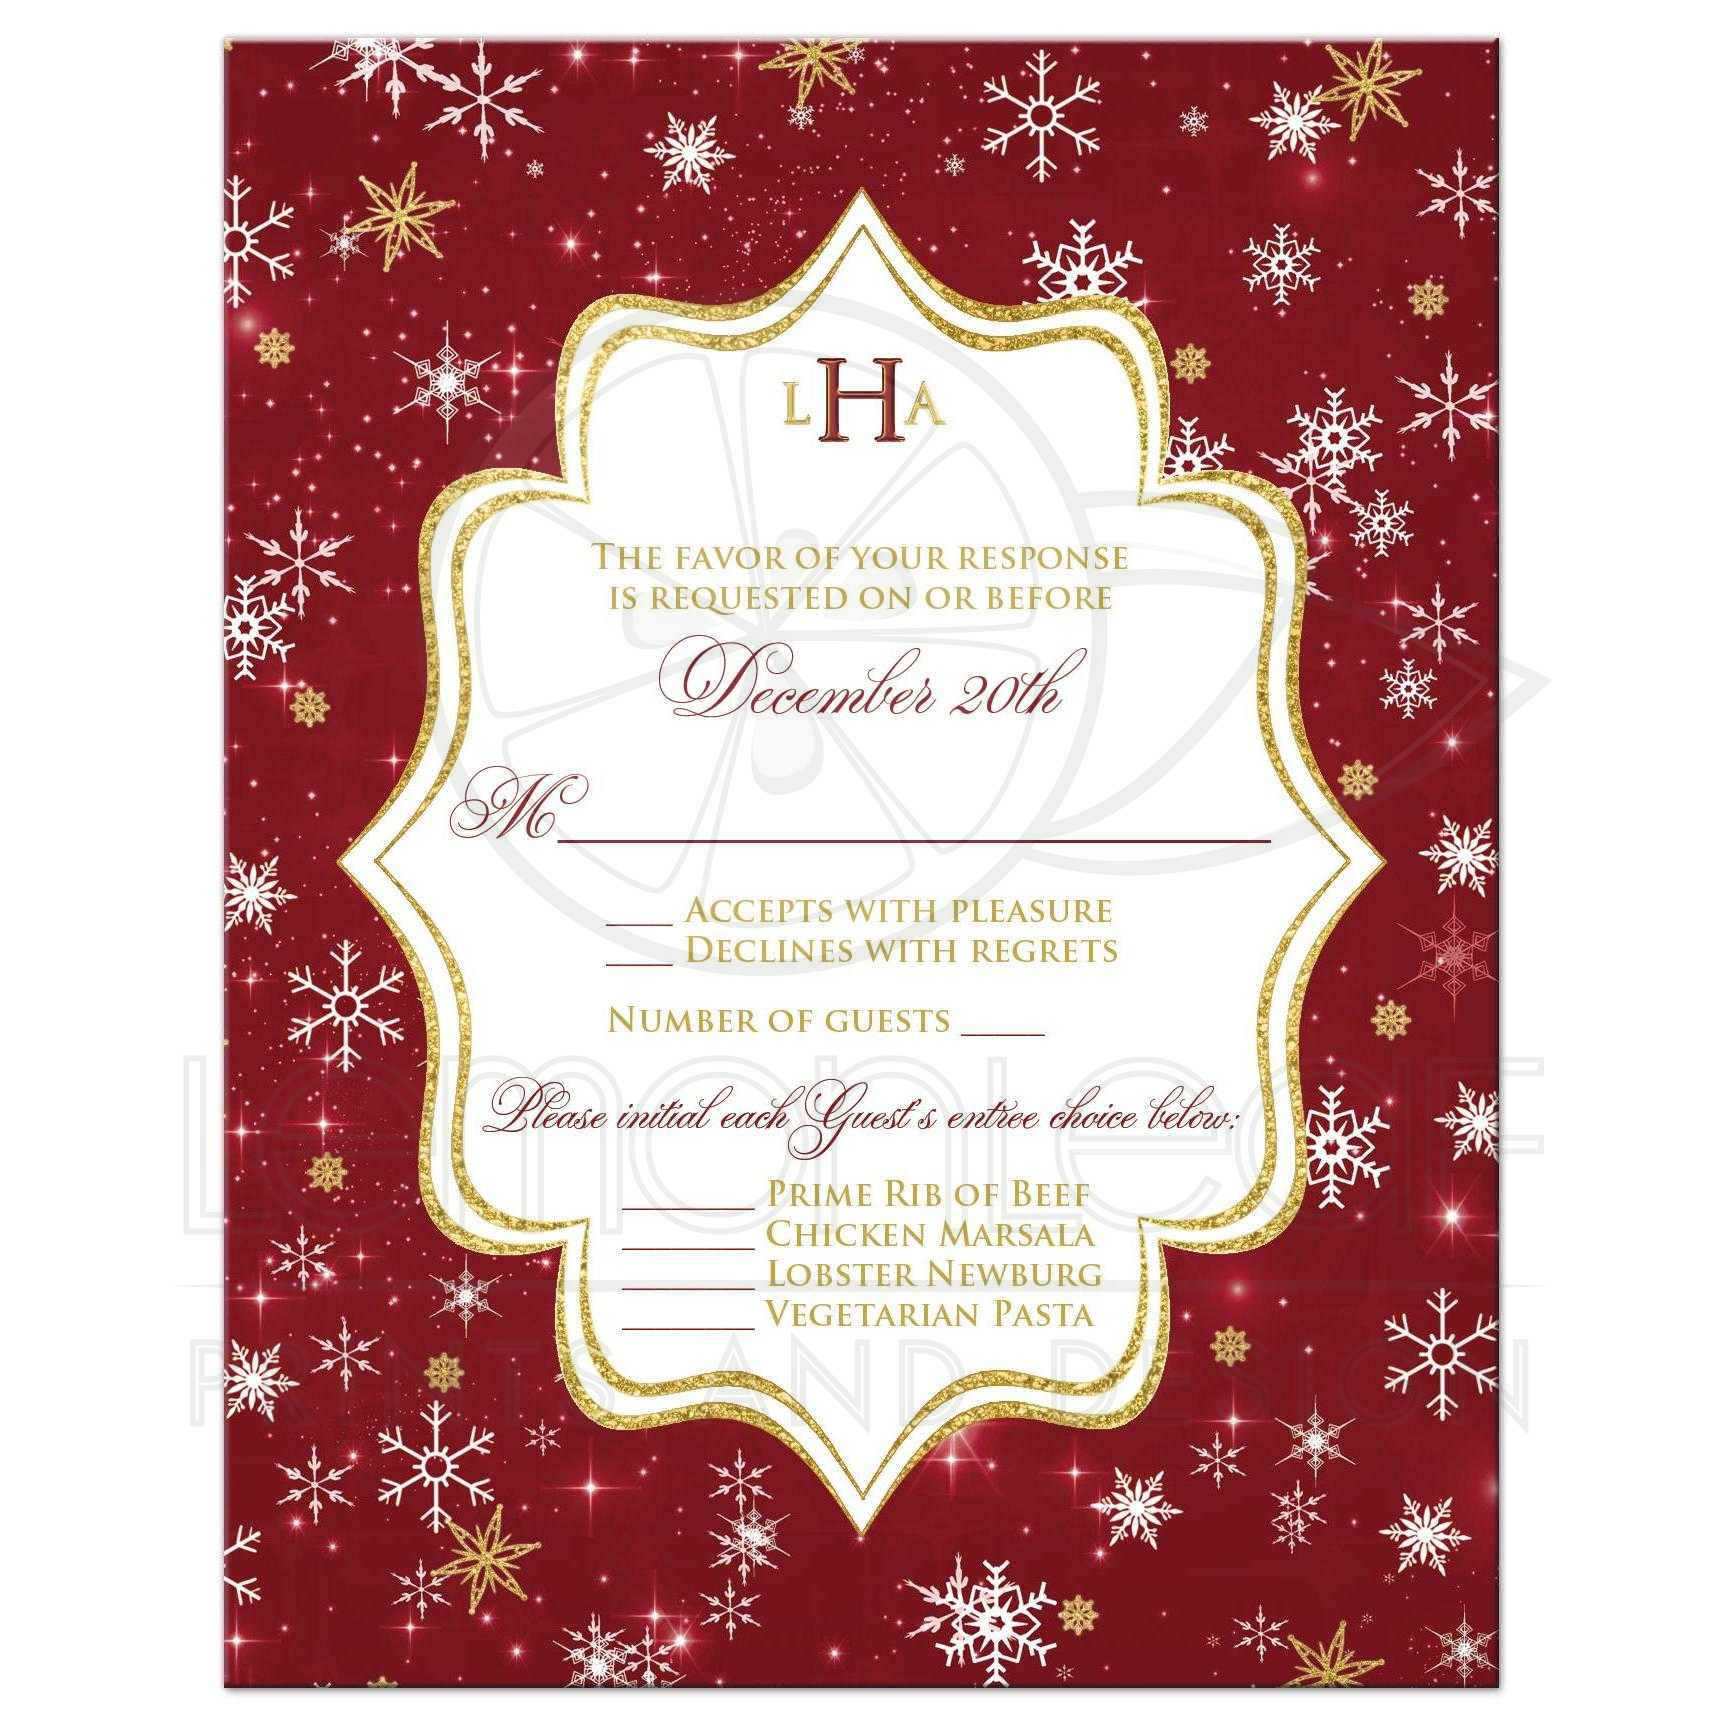 Monogrammed Wedding RSVP Card | Cranberry, Gold, White Snowflakes, Stars